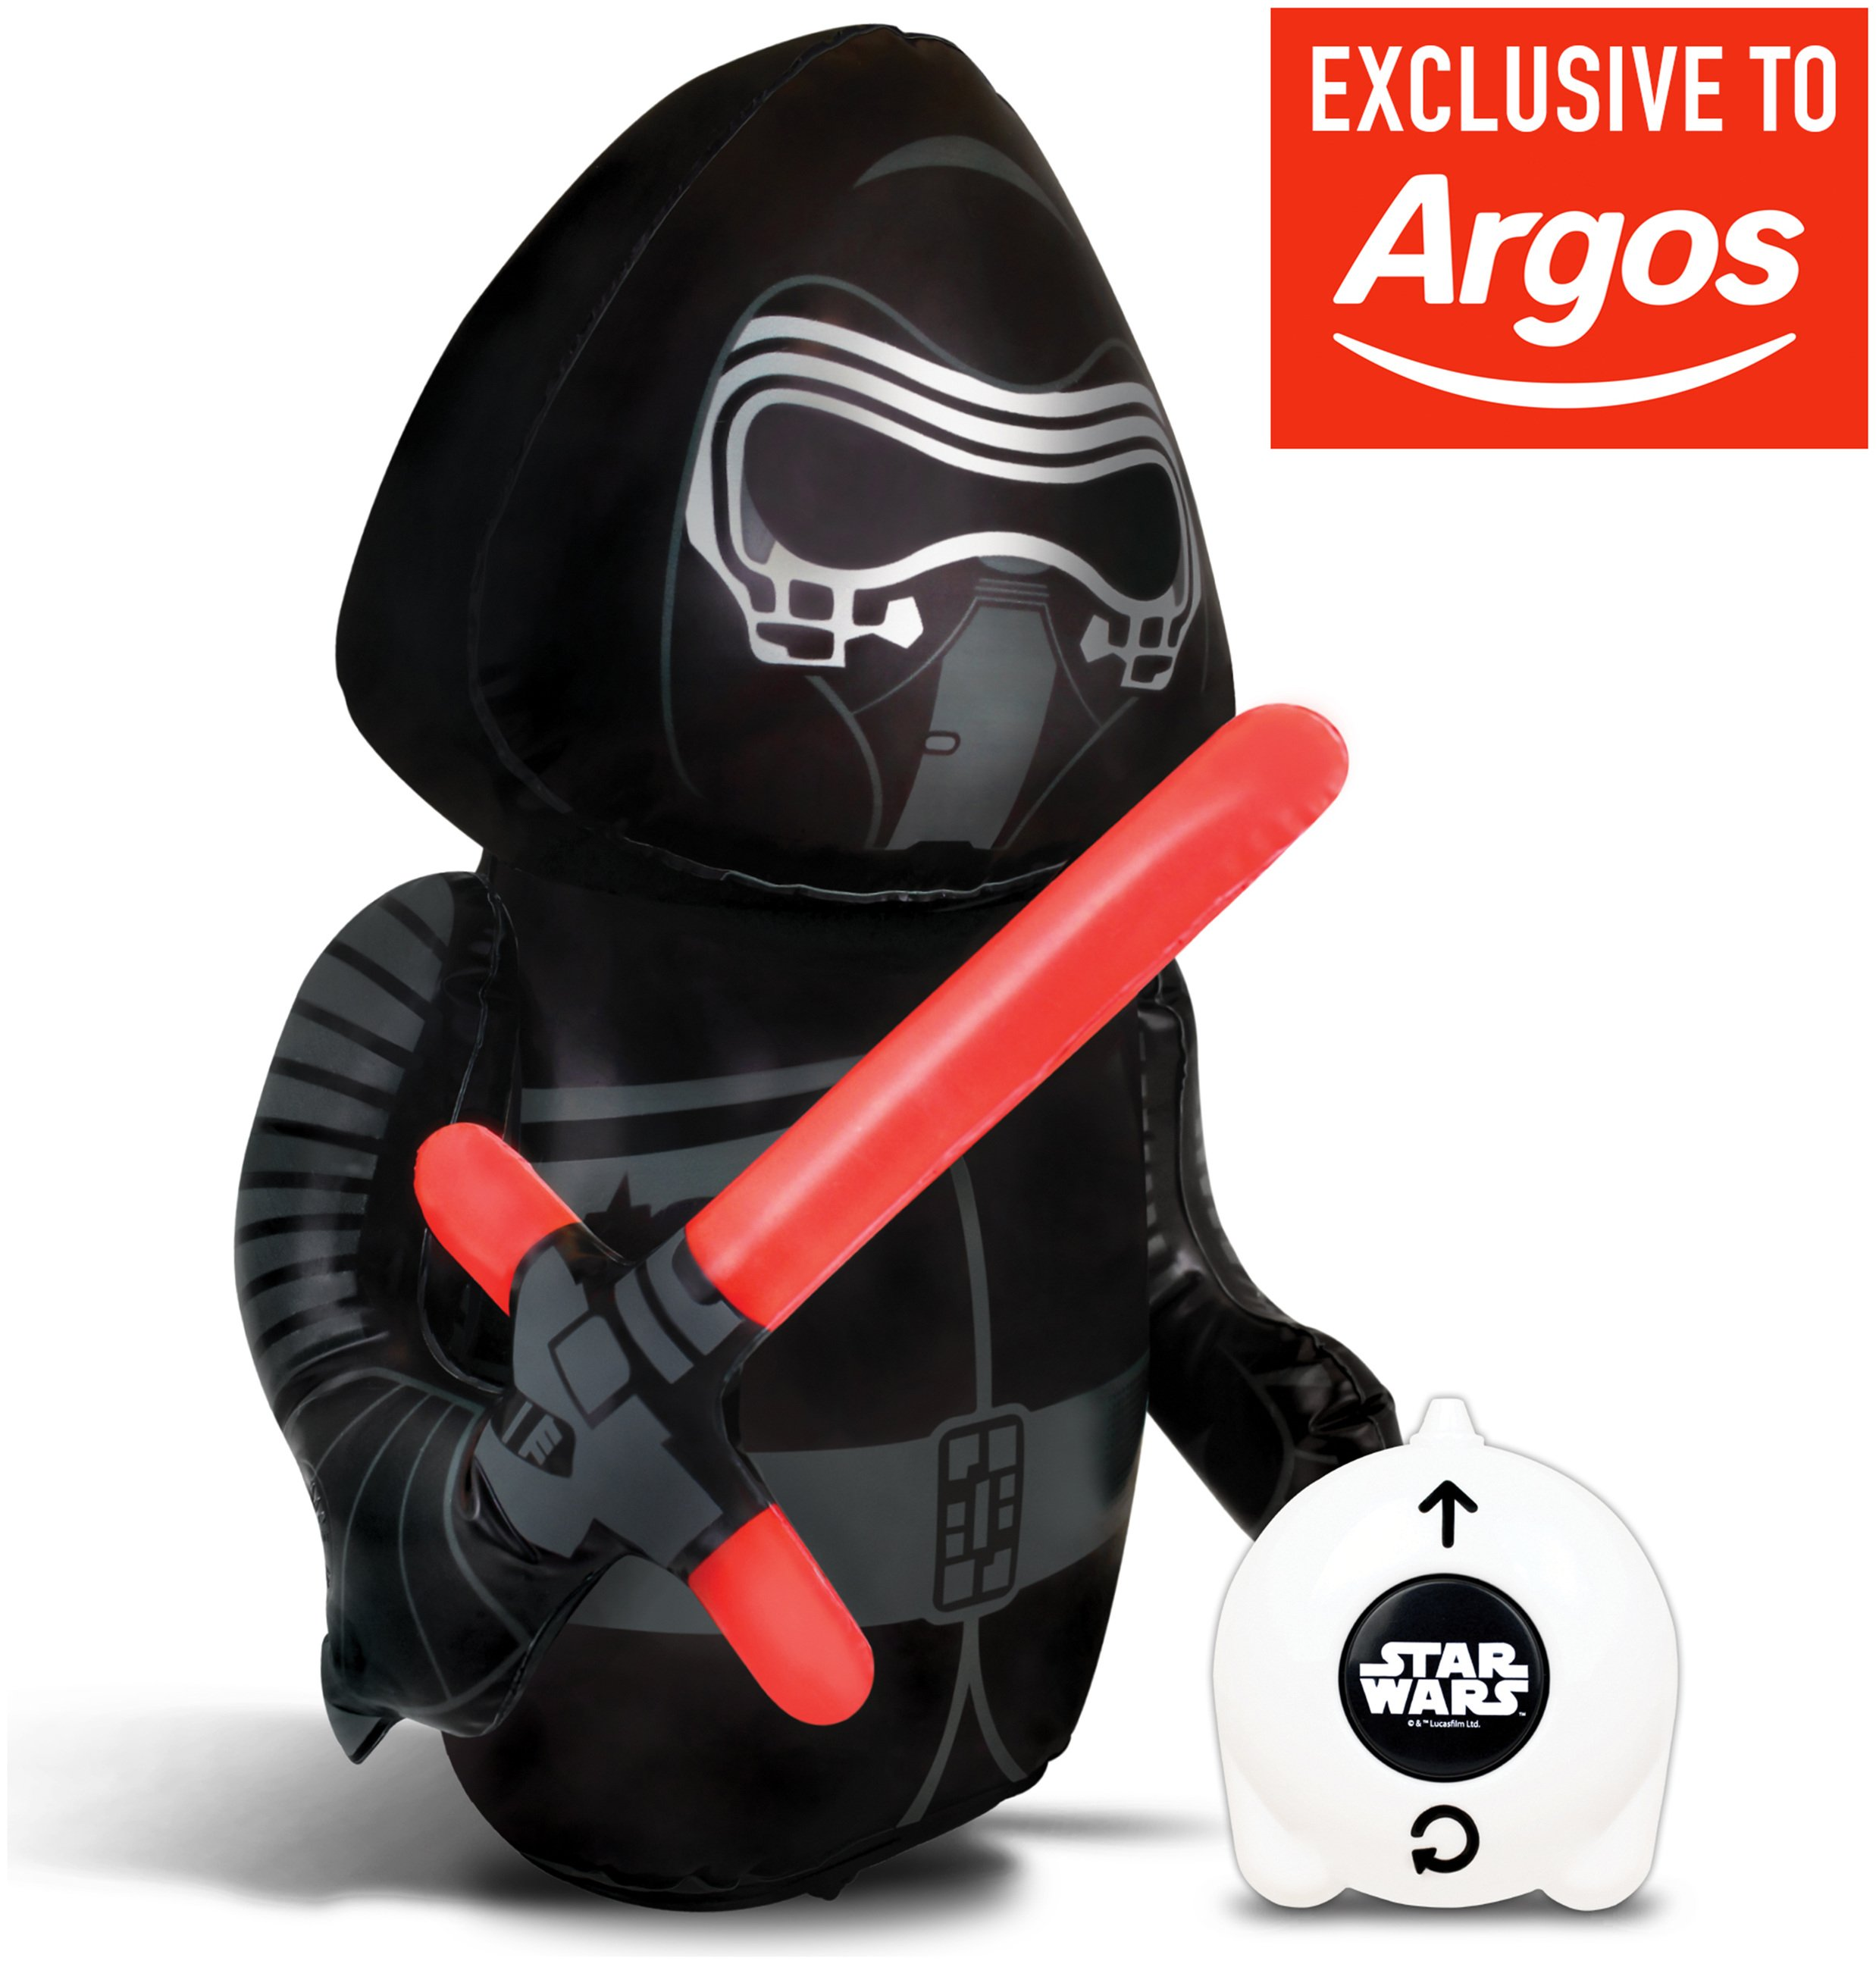 Image of Star Wars Radio Controlled Kylo Ren Inflatable with Sounds